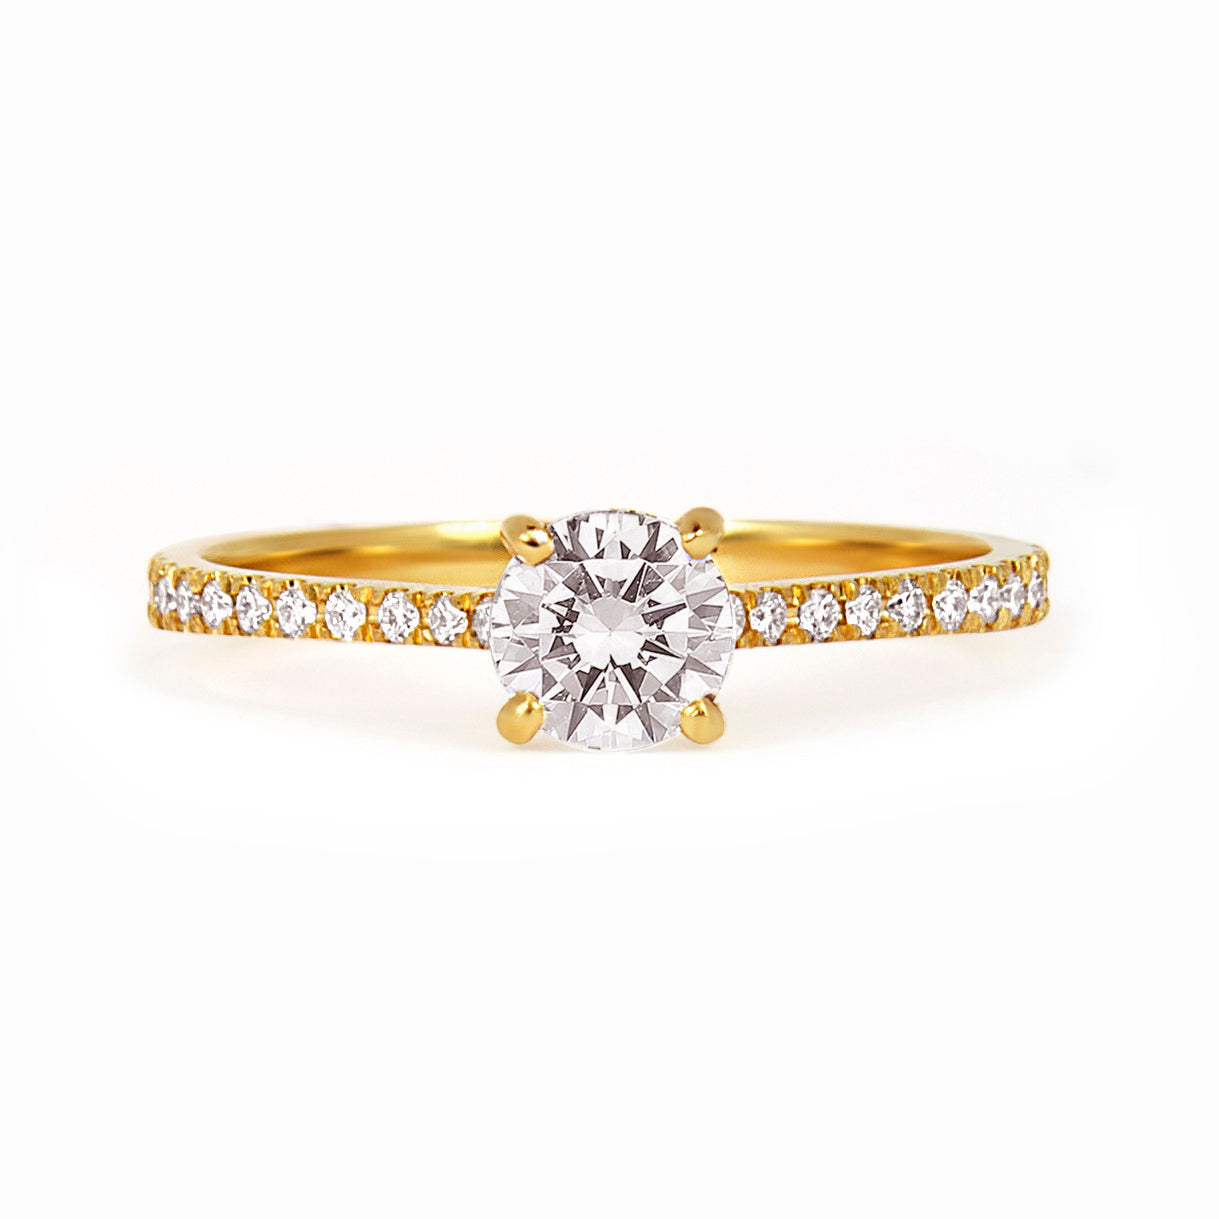 oak ethical yellow products ring alebrusan fairtrade engagement rings solitaire gold royal round diamond